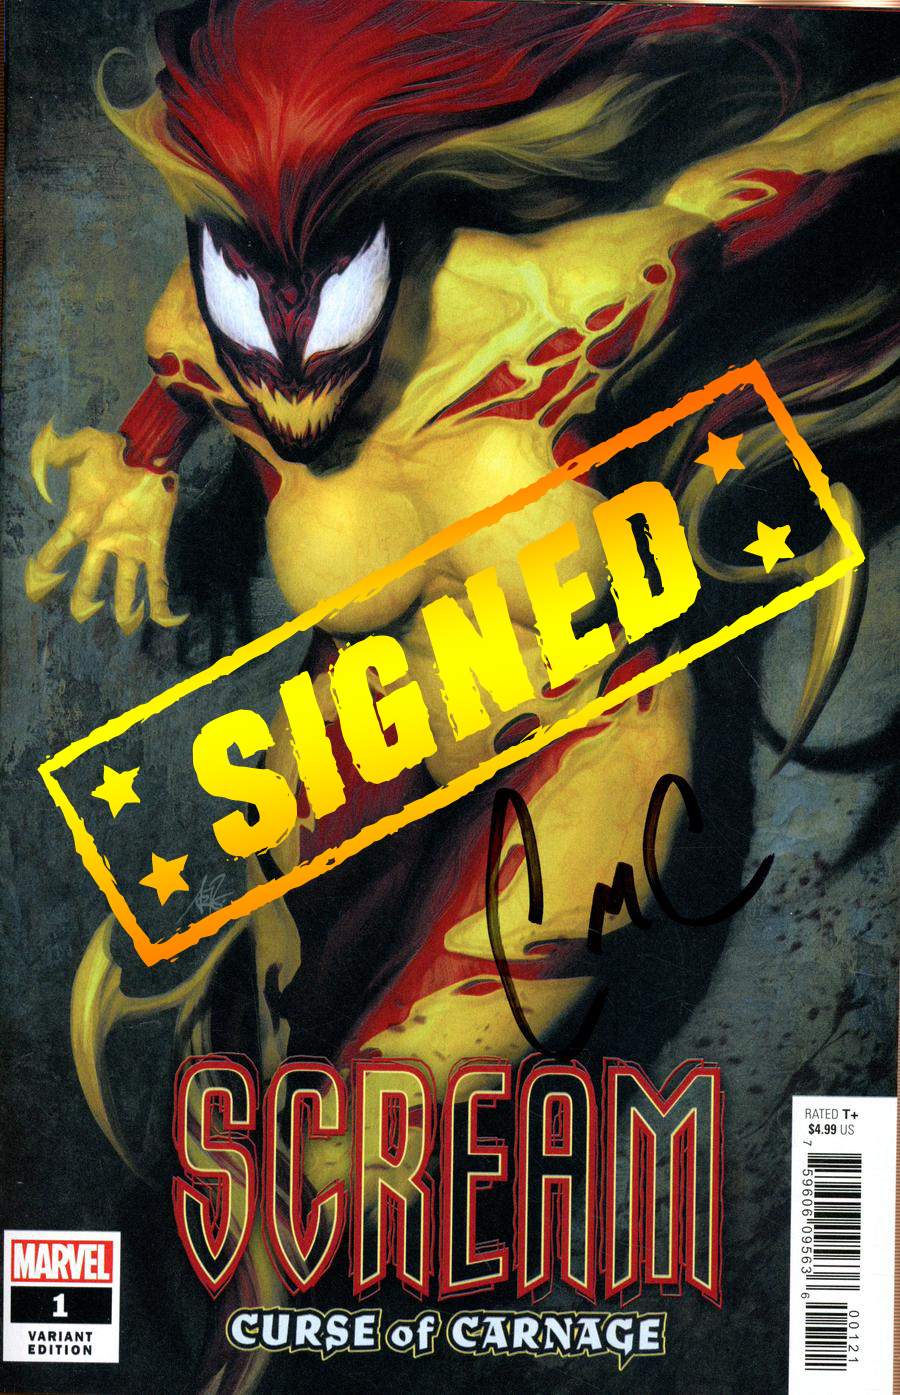 Scream Curse Of Carnage #1 Cover H Variant Stanley Artgerm Lau Cover Signed By Clay McLeod Chapman (Absolute Carnage Tie-In)